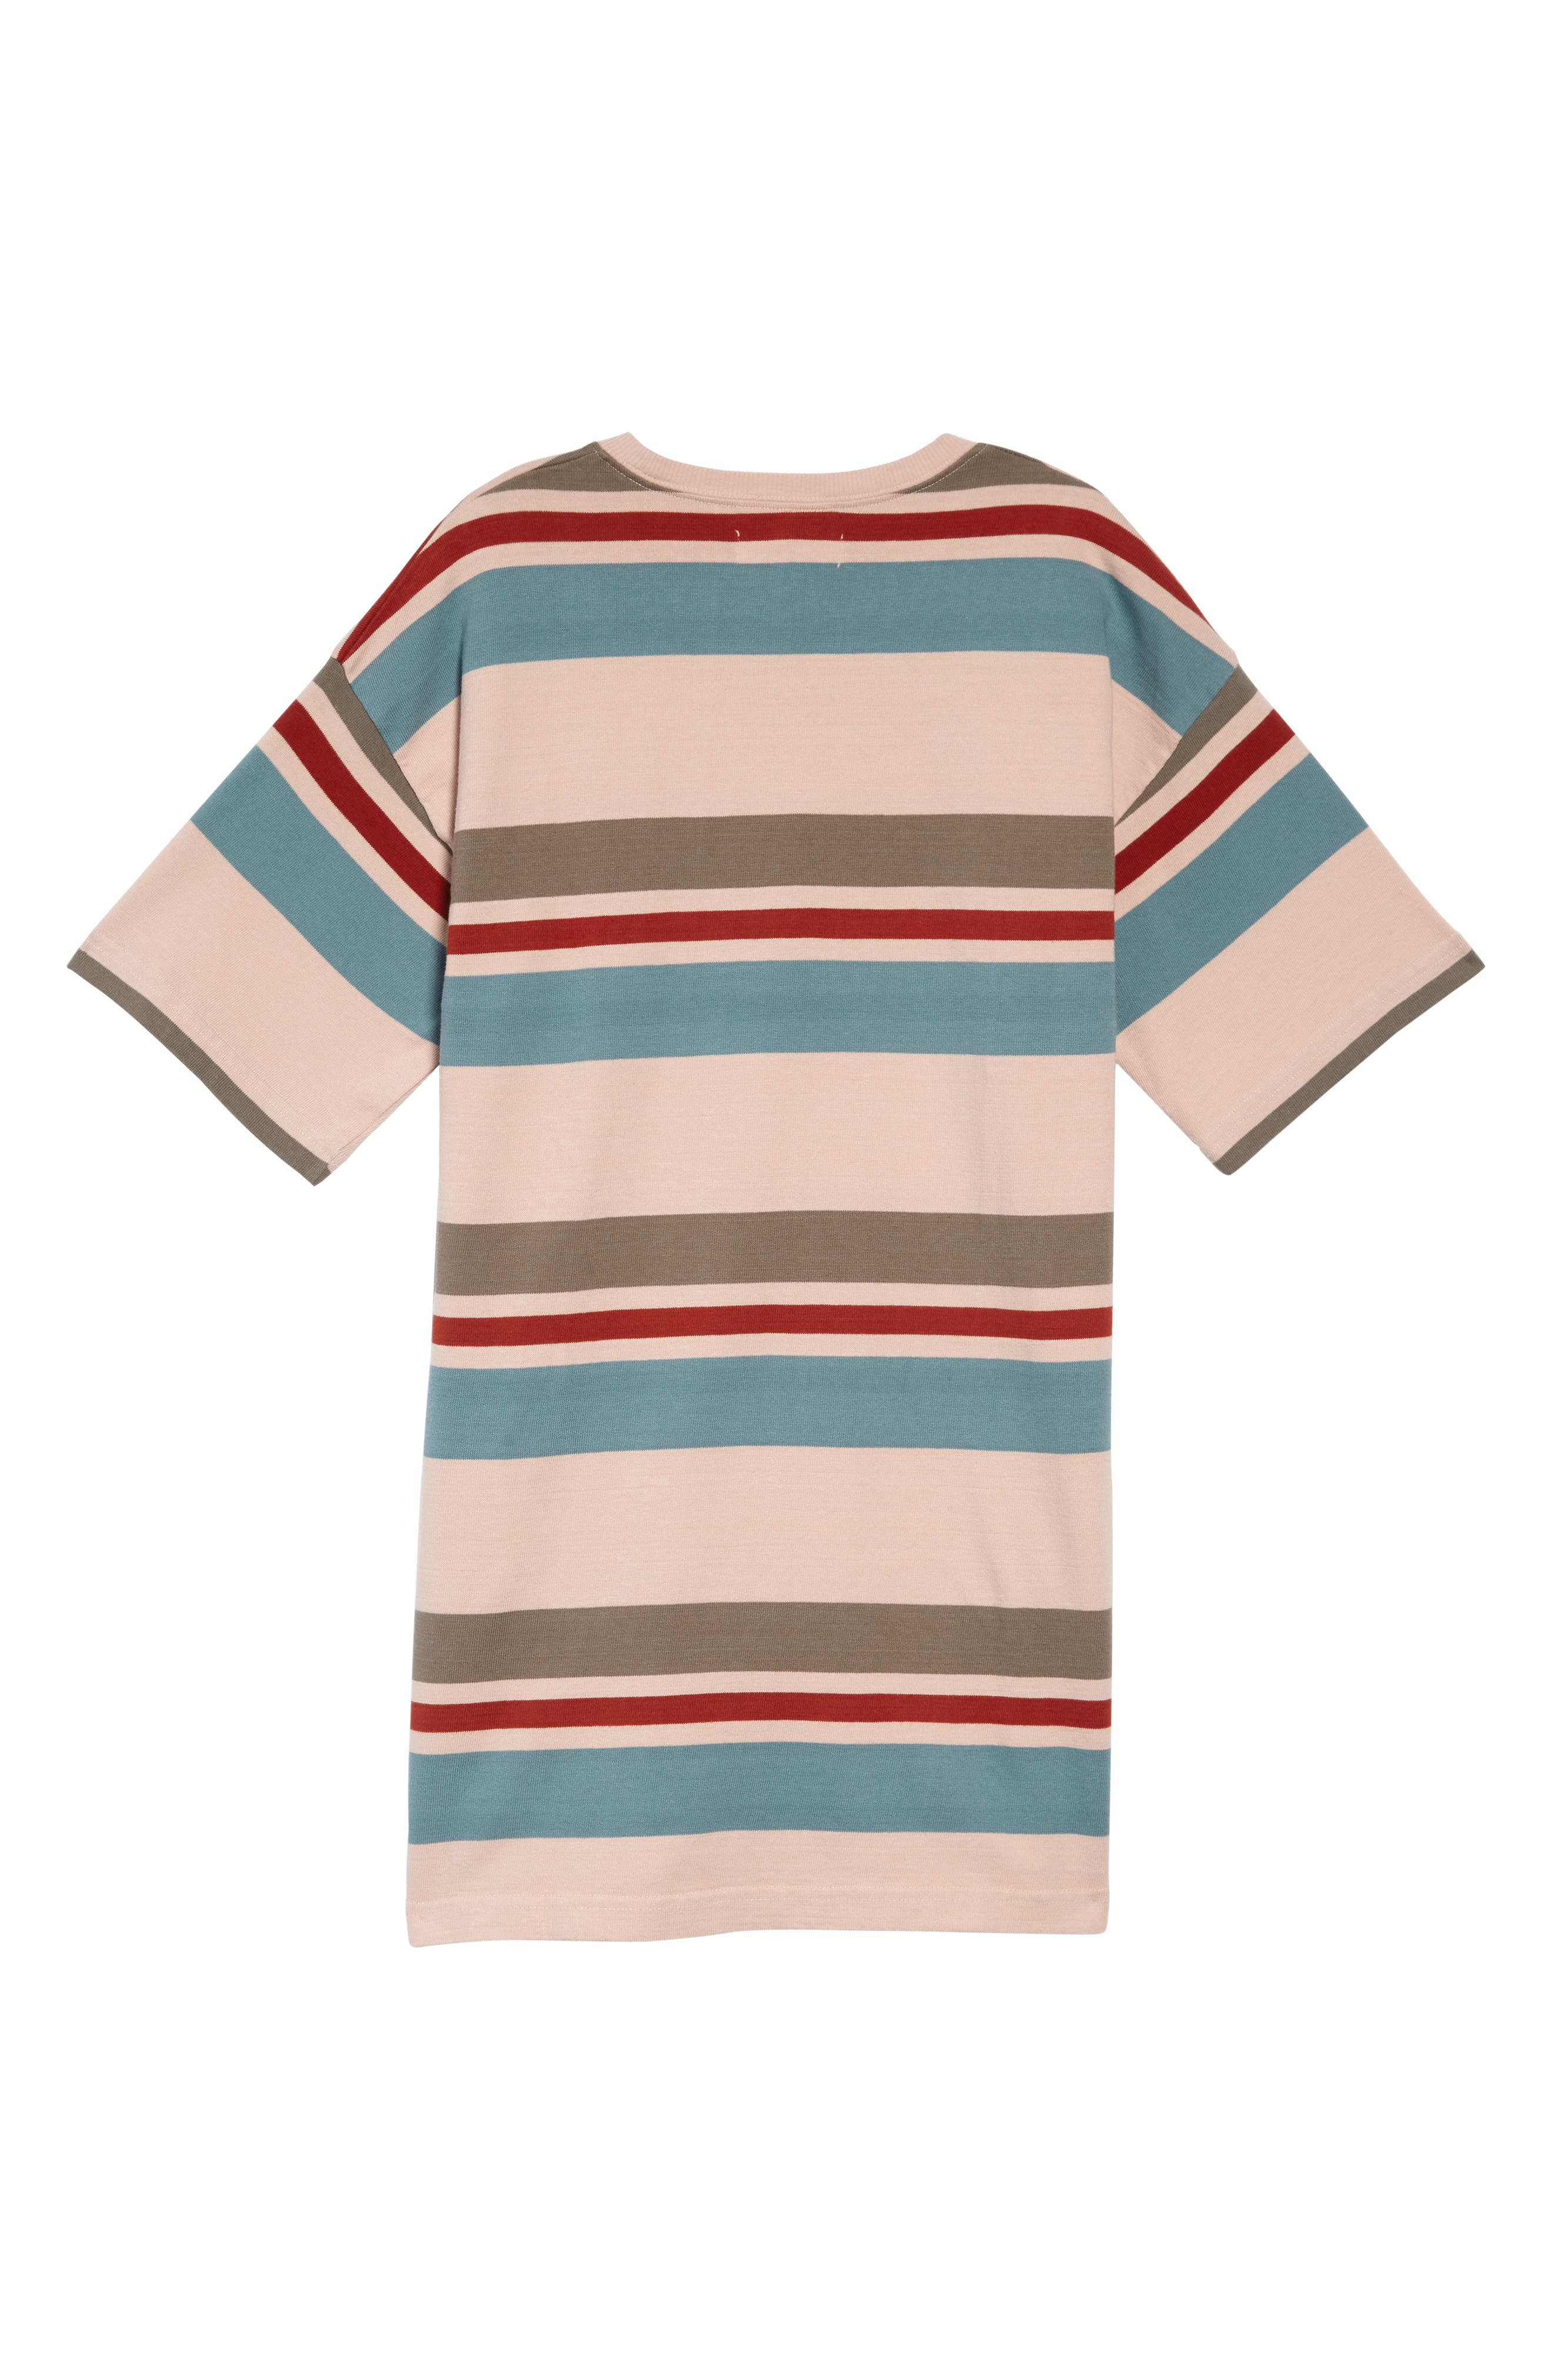 TREASURE & BOND, Rugby Stripe Shirtdress, Alternate thumbnail 2, color, PINK PEACH RUGBY STRIPE